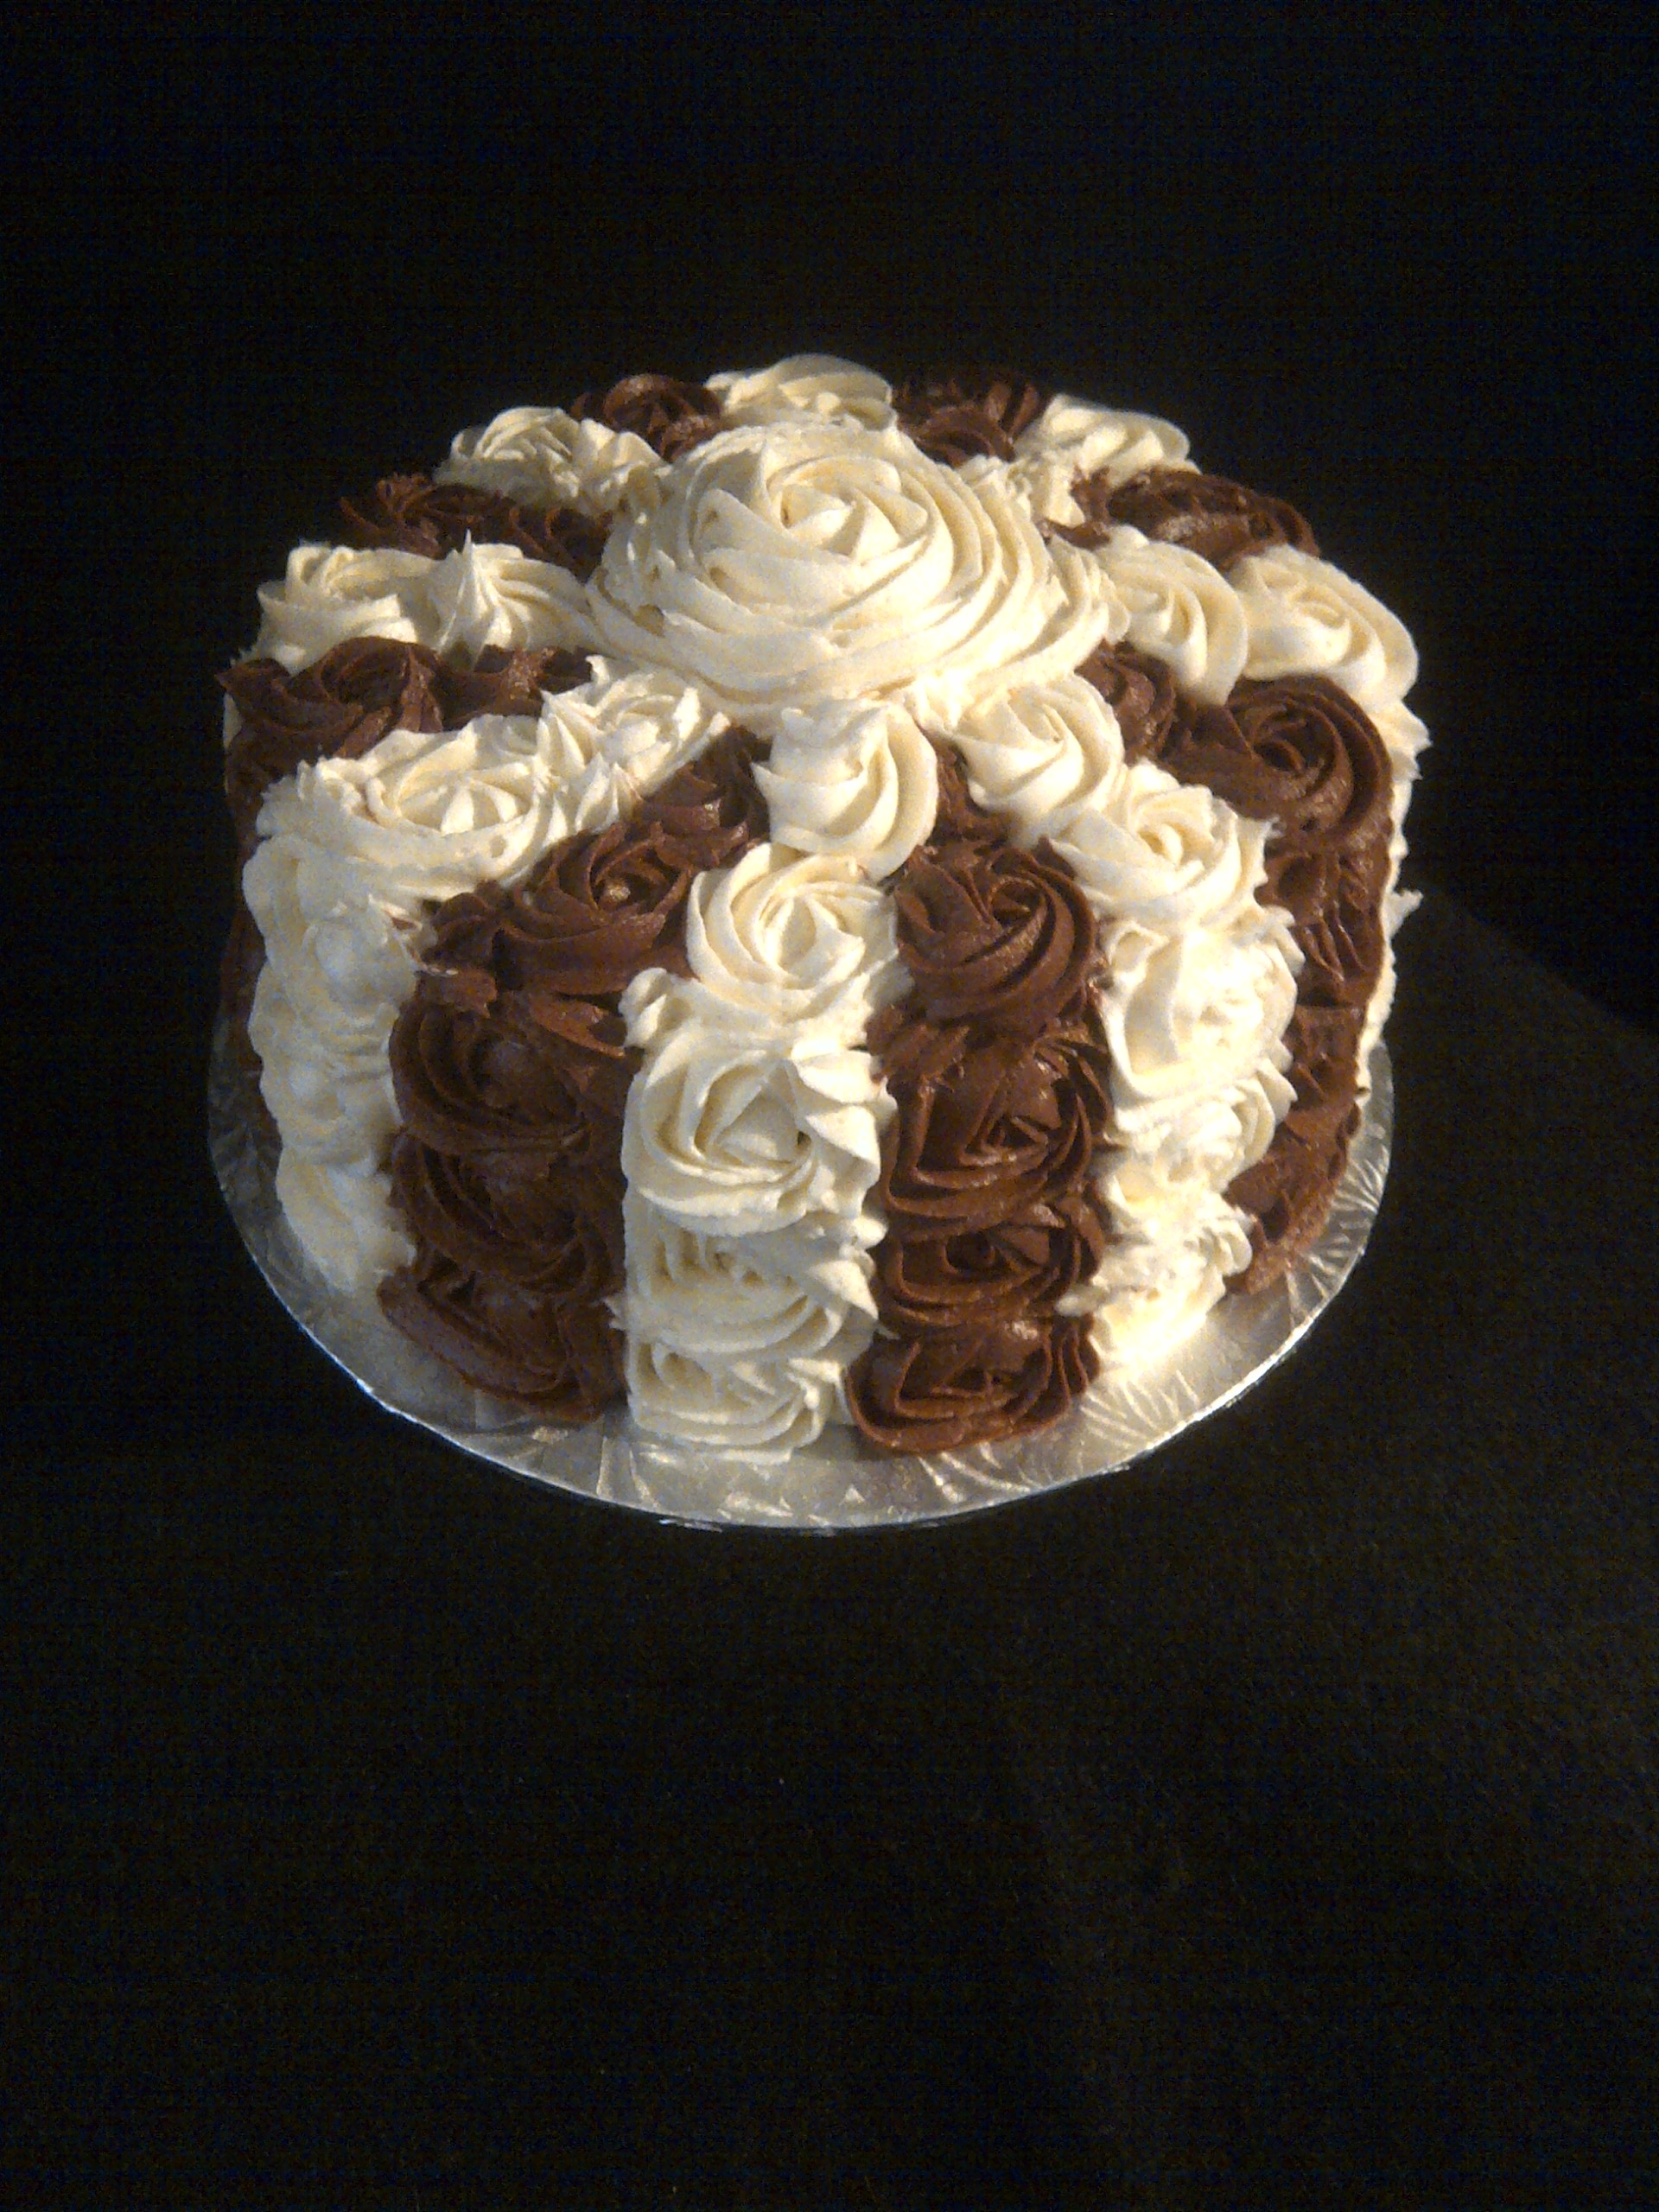 Turtles Inspired Rosette Cake 4 Layers Of Chocolate Cake Bottom And